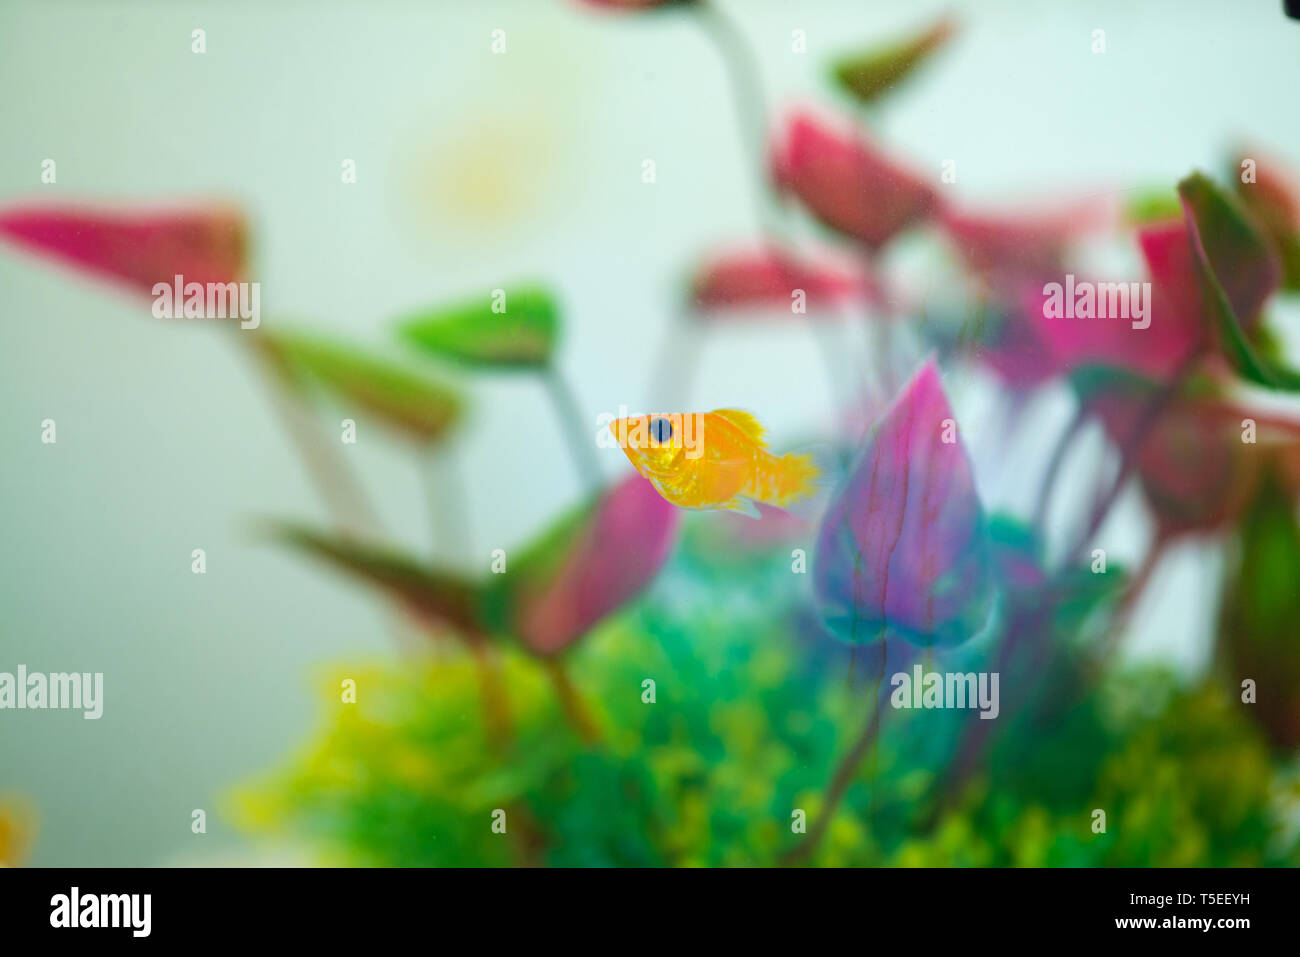 Little Molly fish, Poecilia latipinna in fish tank or aquarium, underwater life concept. Stock Photo